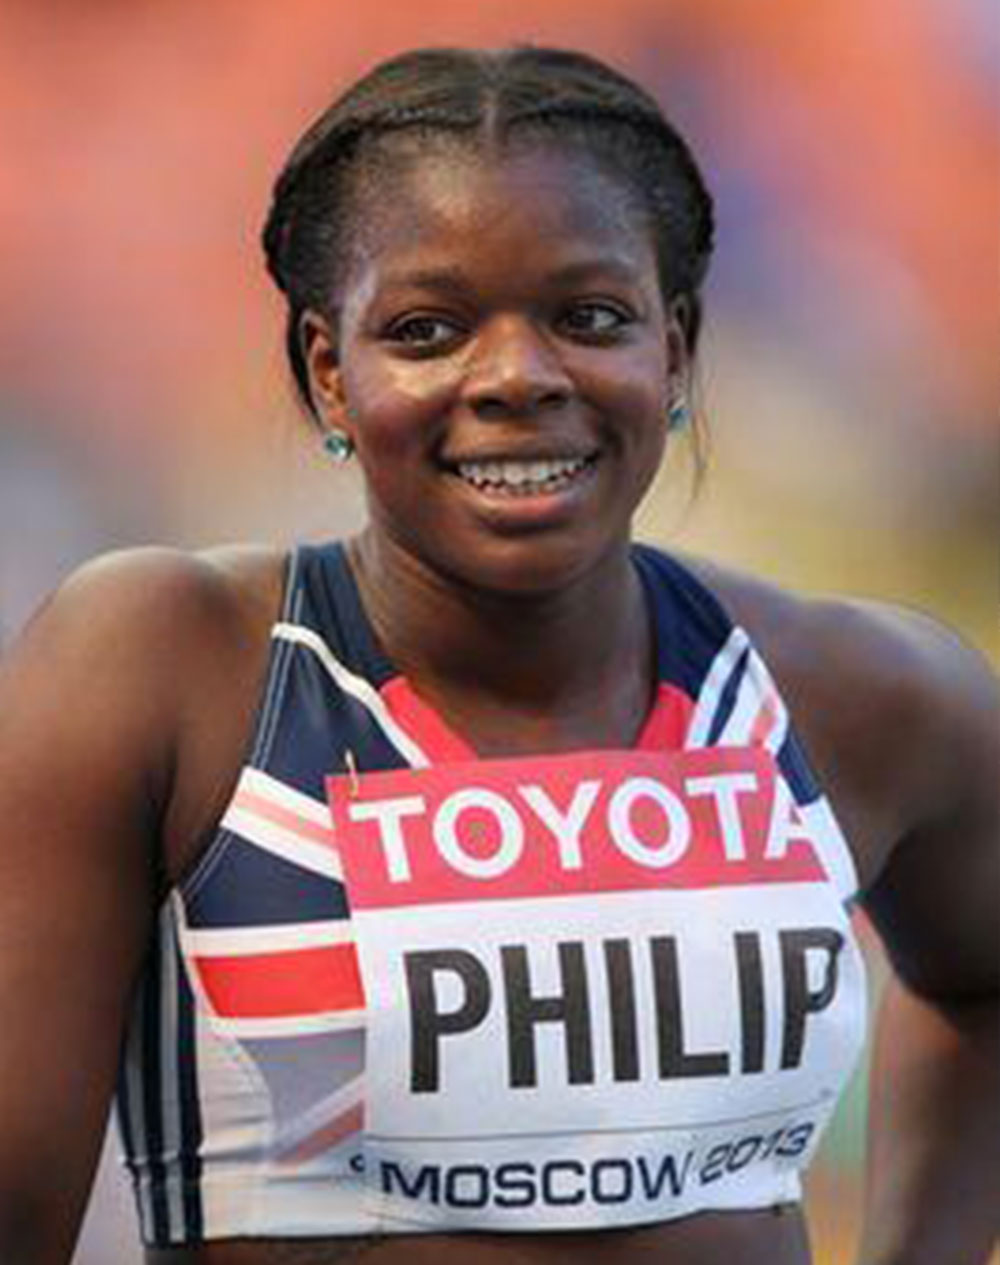 Asha Philip - going from major knee surgery to being an Olympic medallist